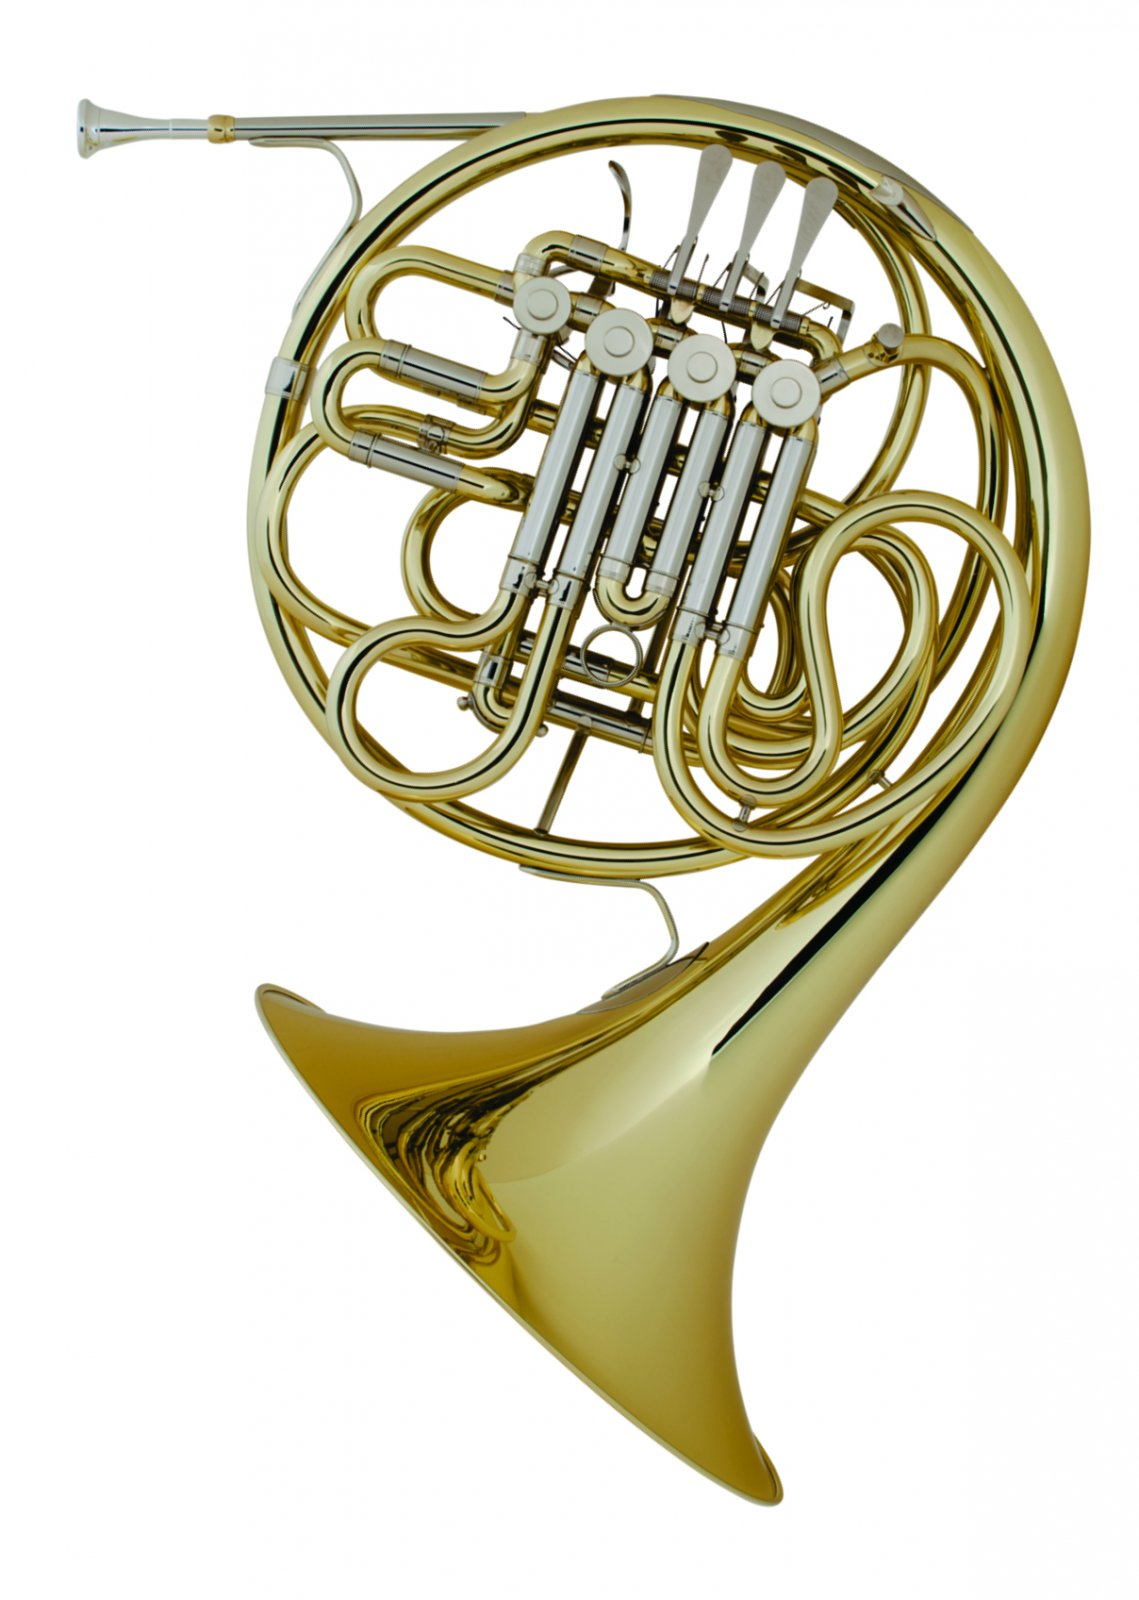 CONN 6D Performance Double French Horn